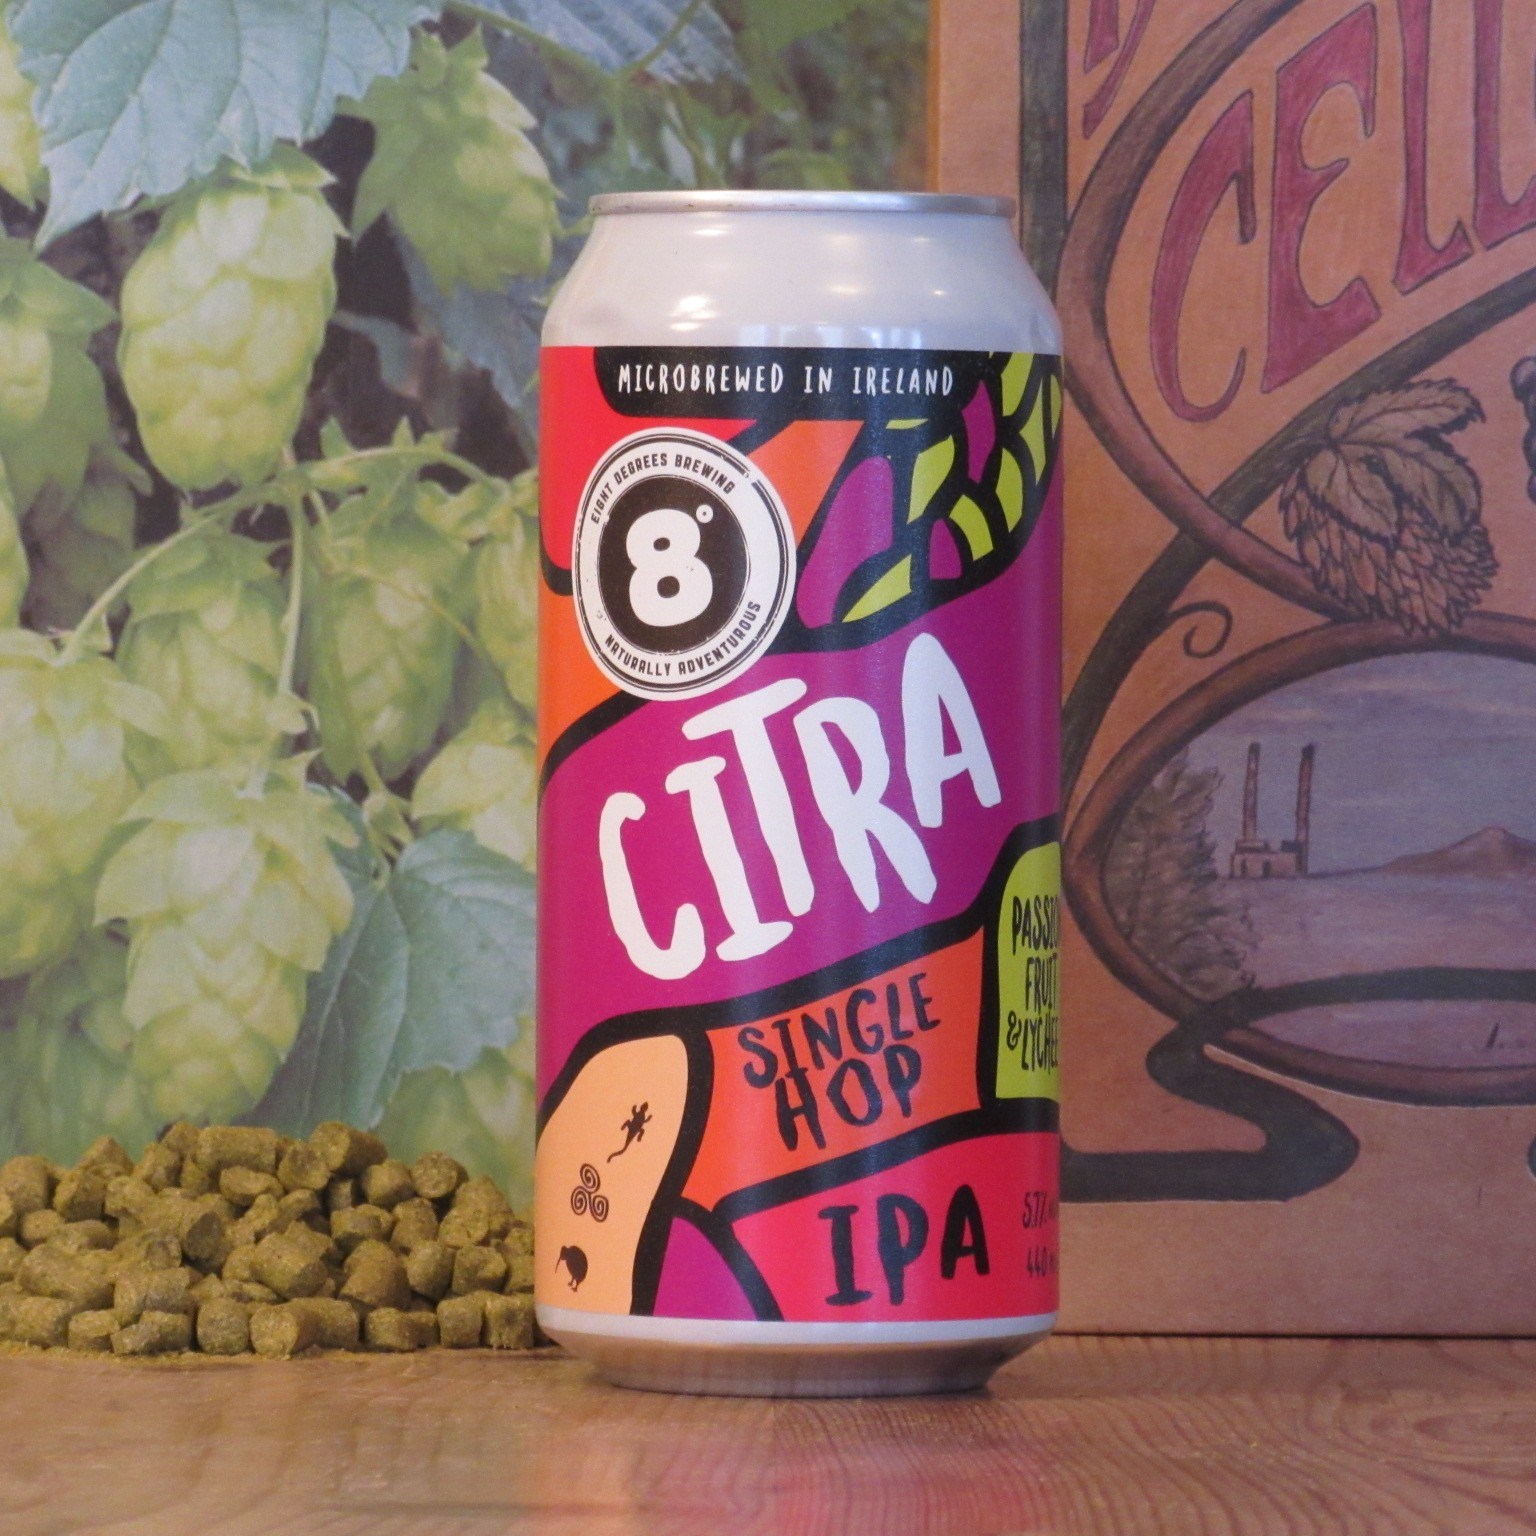 Eight Degrees Citra Single Hop IPA